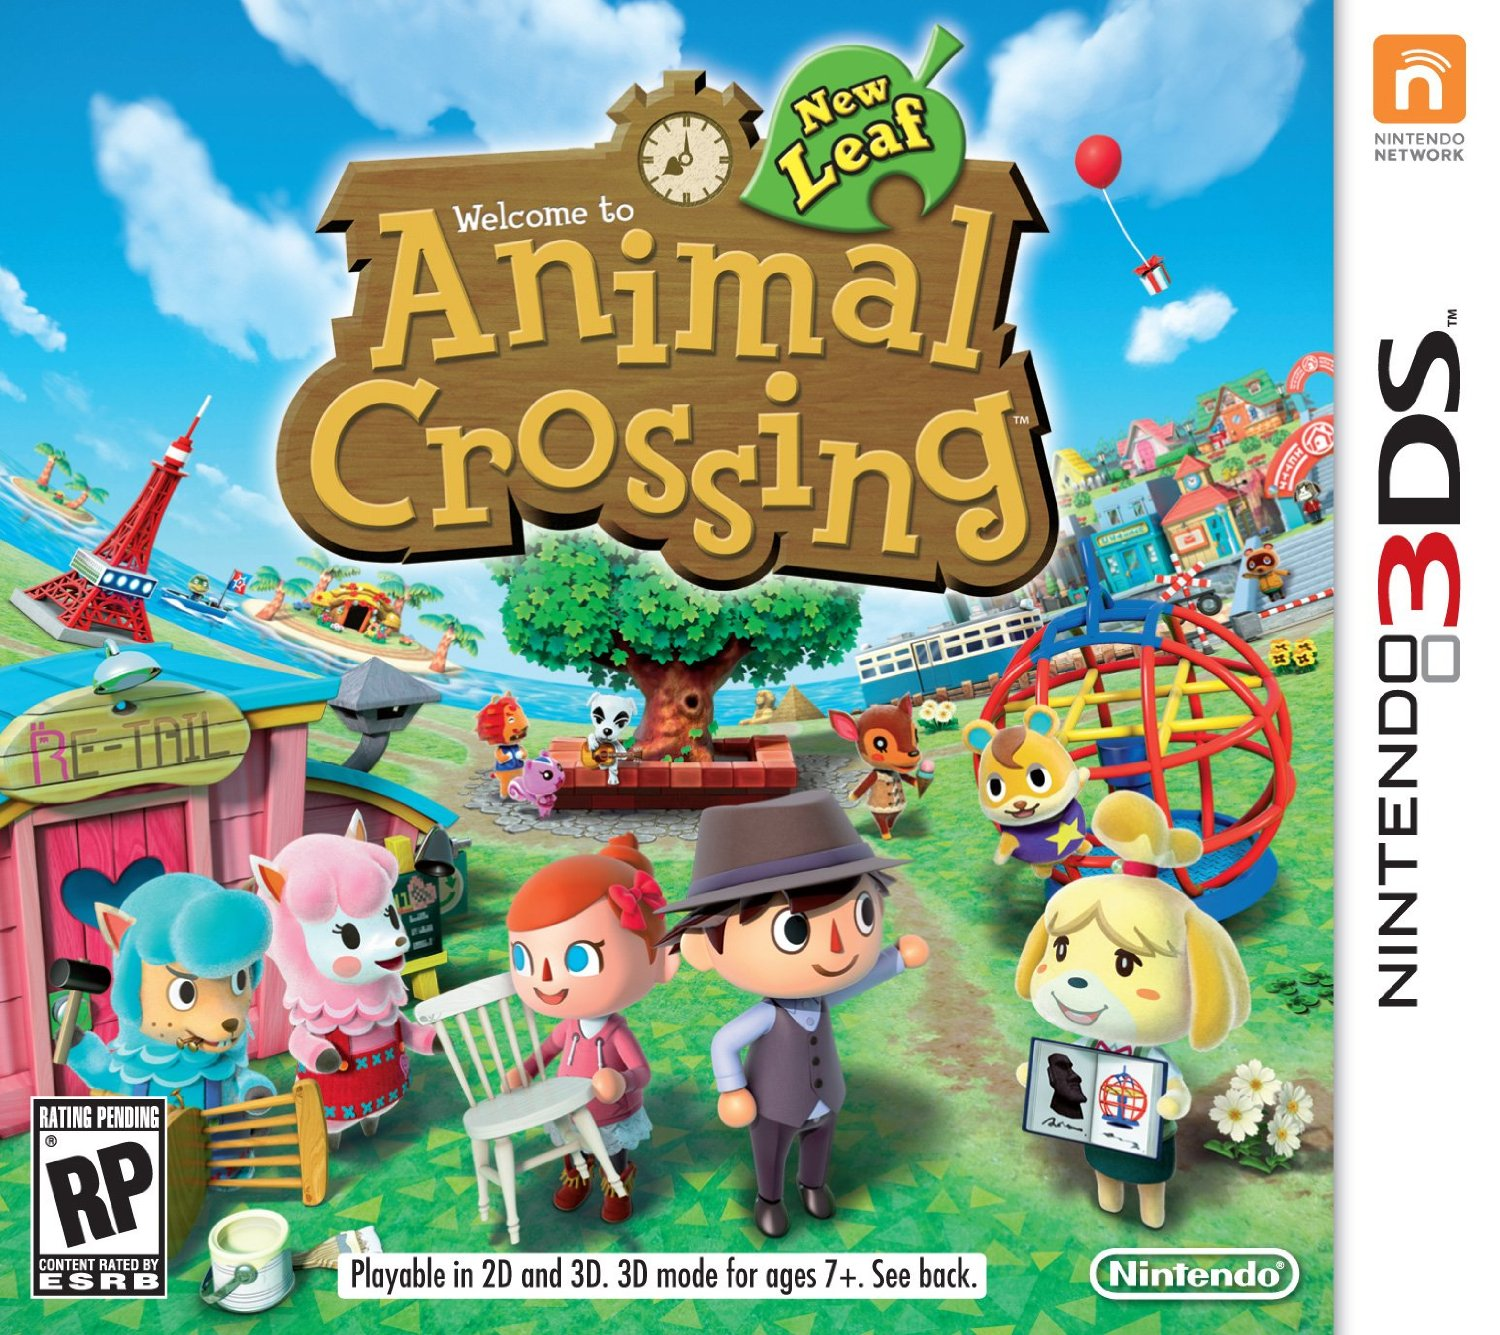 File:North America New Leaf box-art.jpg